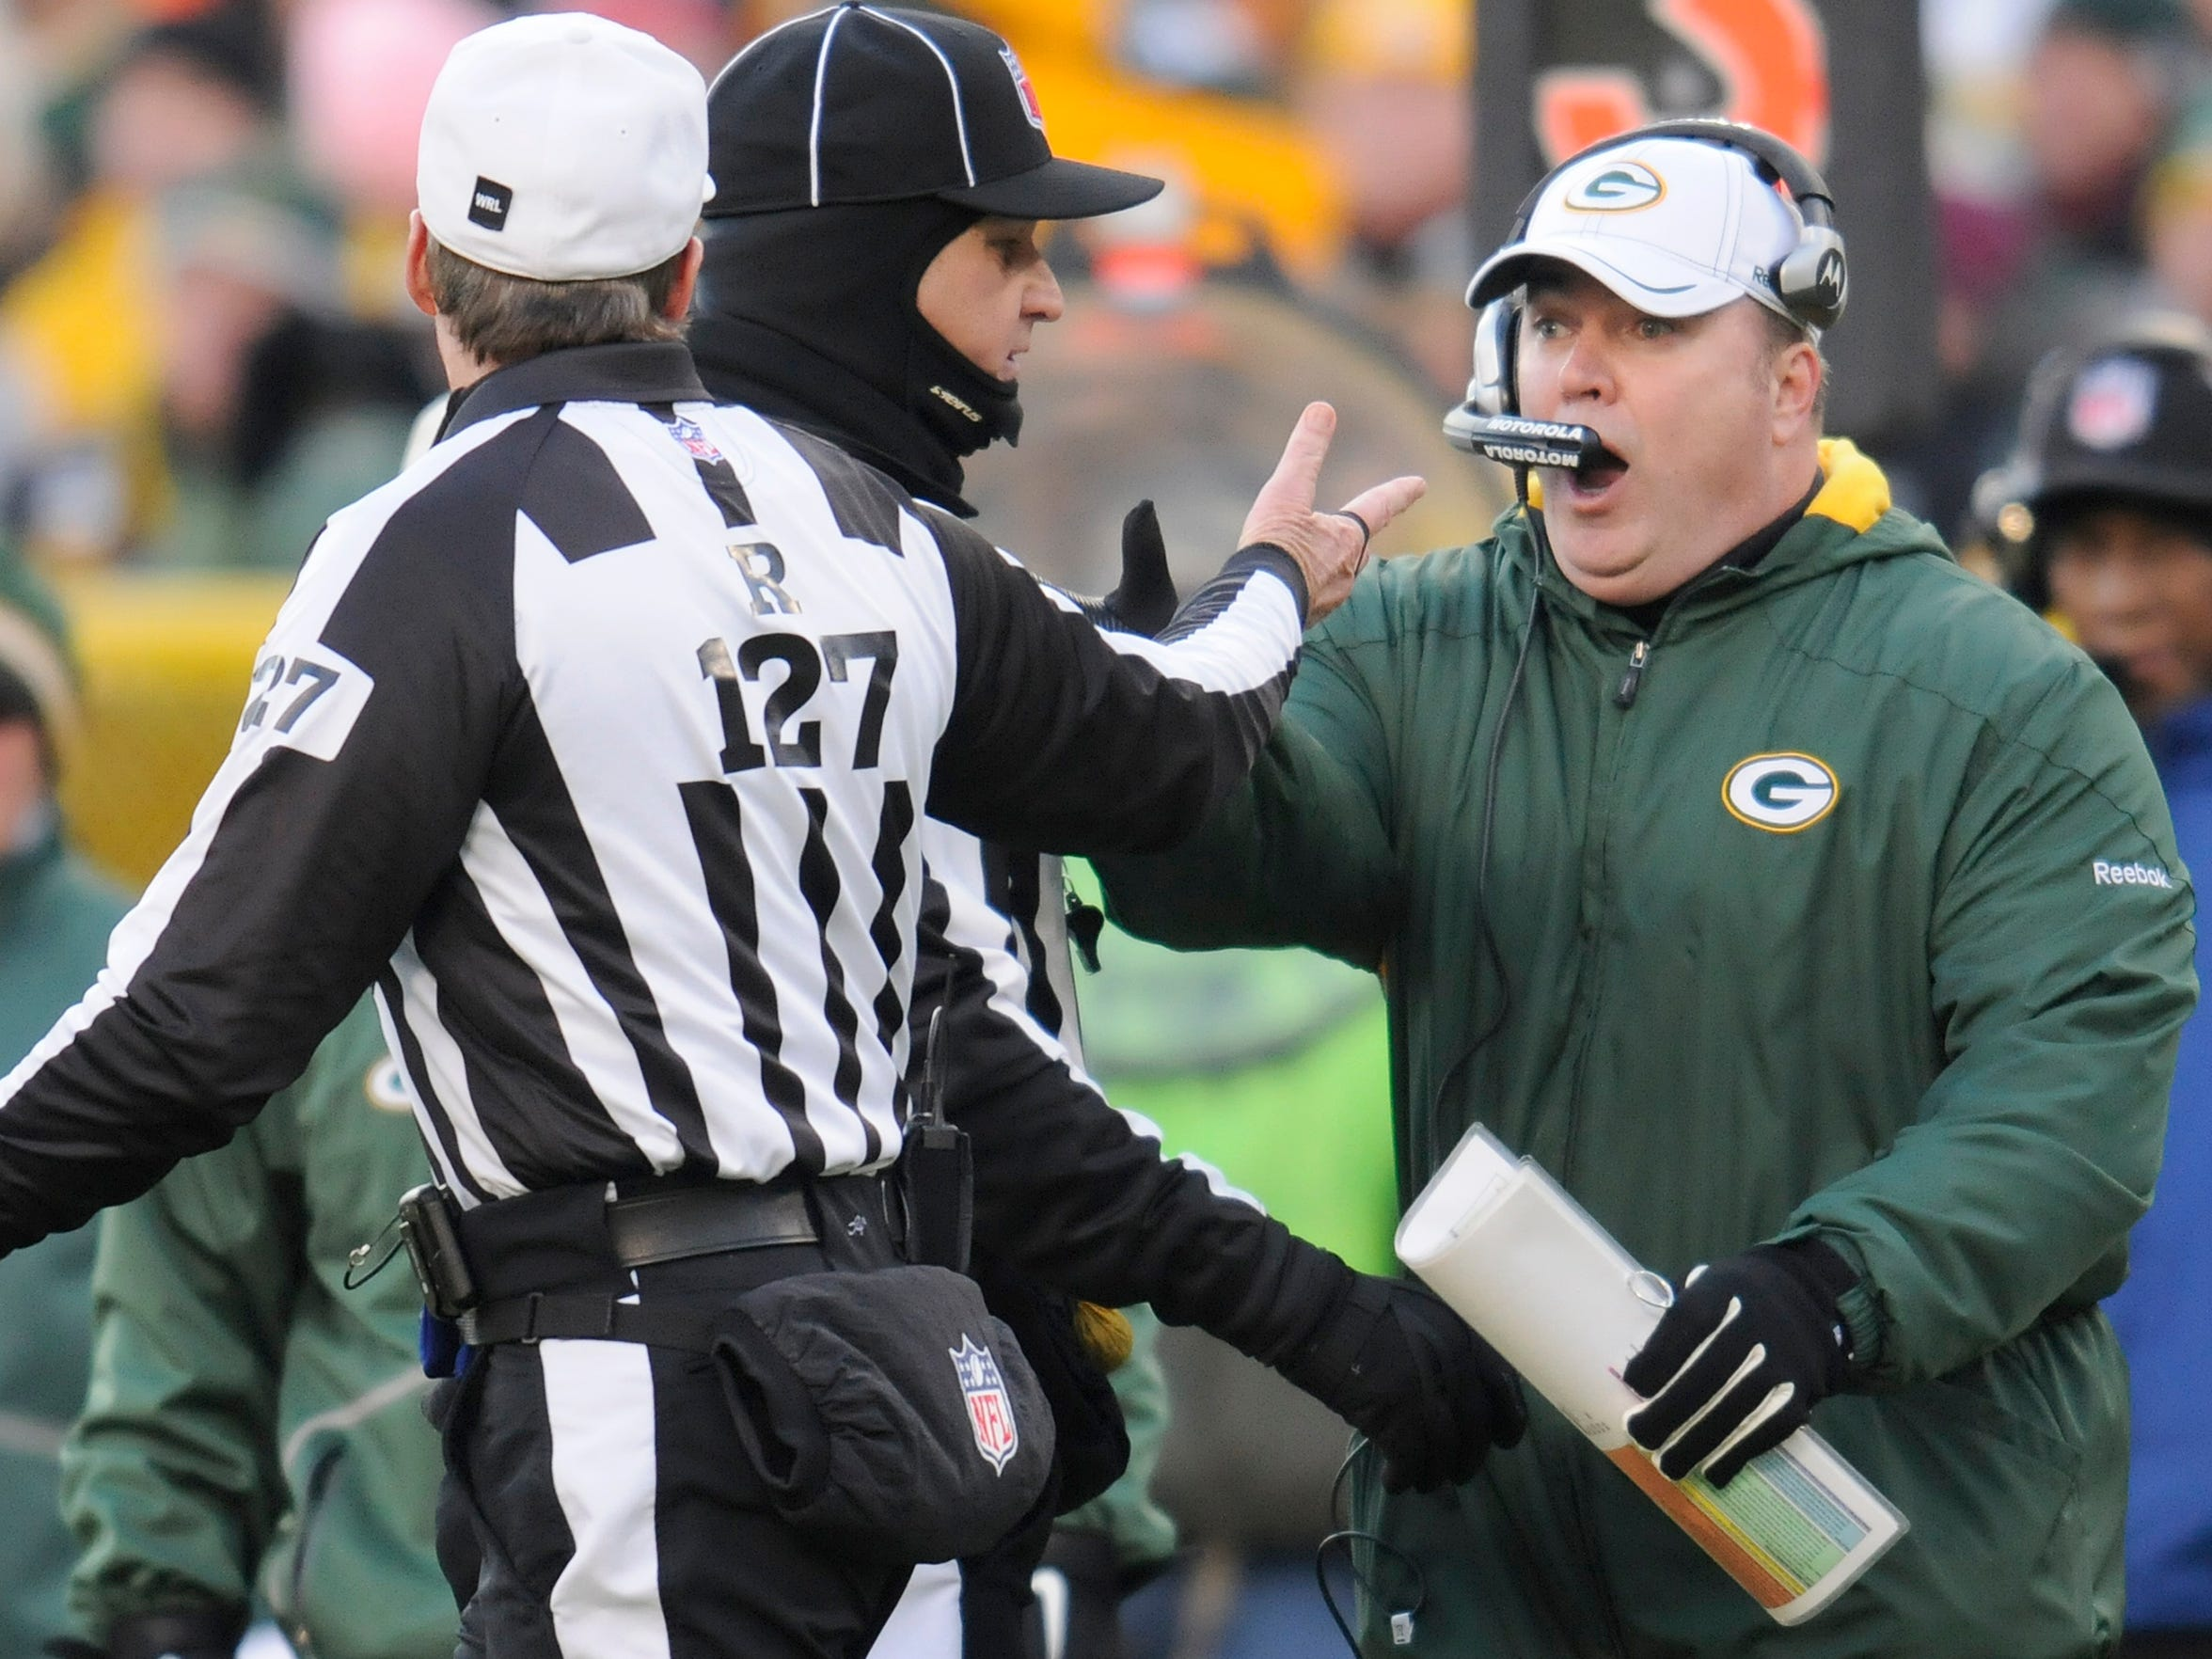 Green Bay Packers head coach Mike McCarthy, right, protests a fumble call in the first quarter against the New York Giants during the NFC divisional playoff game at Lambeau Field in Green Bay on Sunday, Jan. 15, 2012.